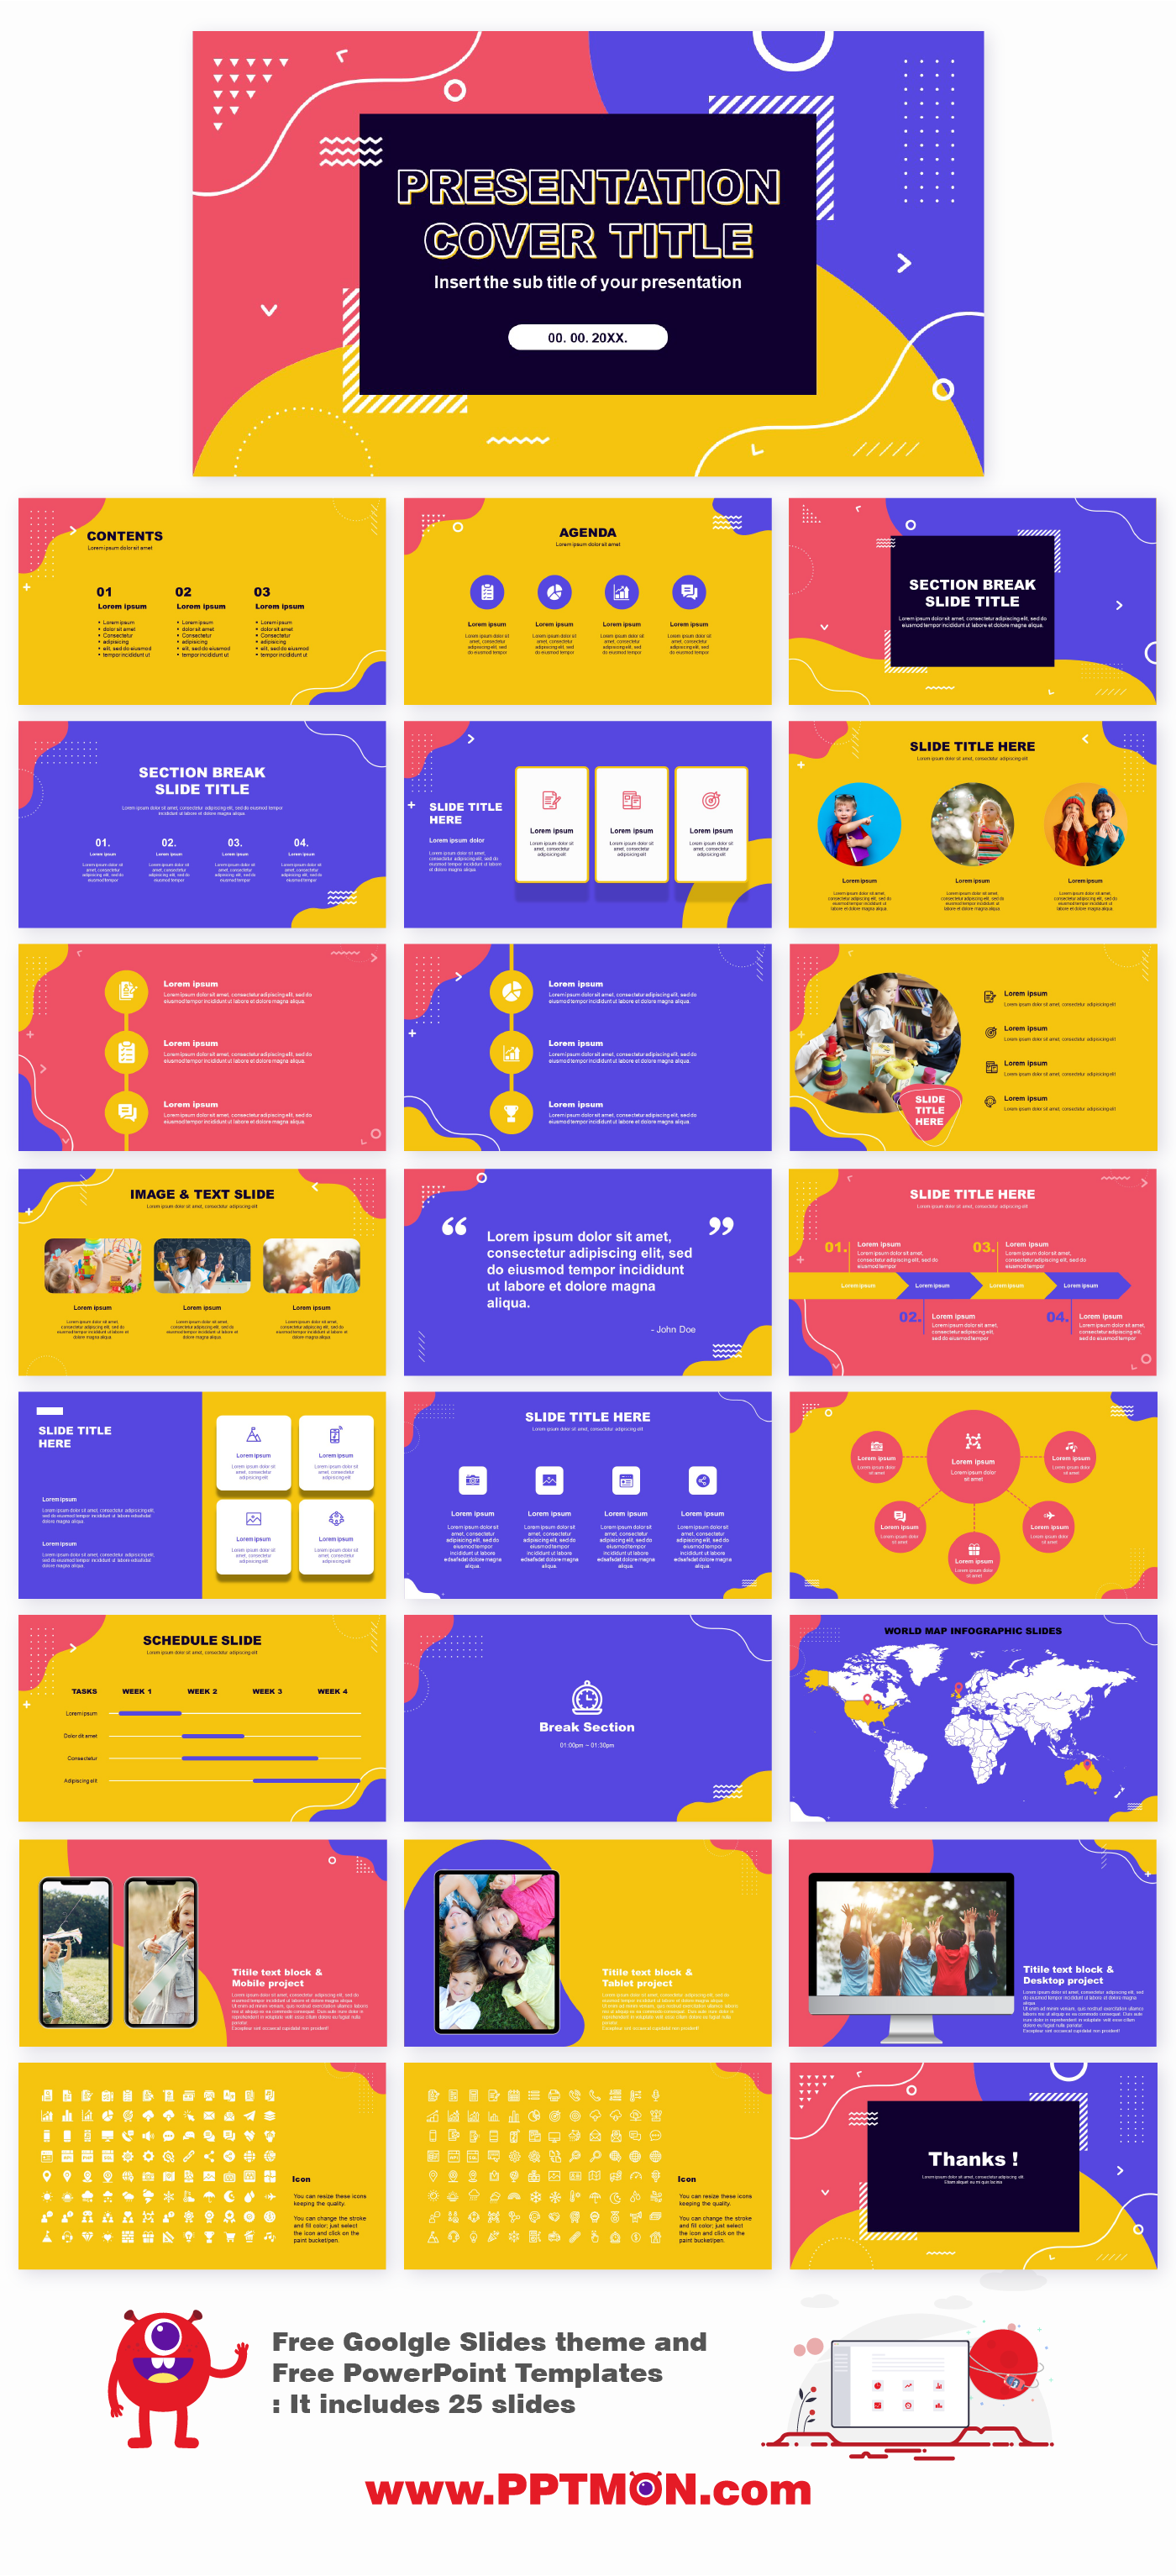 Wave Memphis Free Presentation Templates Free Powerpoint Templates And Google Sli In 2020 Powerpoint Design Templates Presentation Template Free Powerpoint Templates